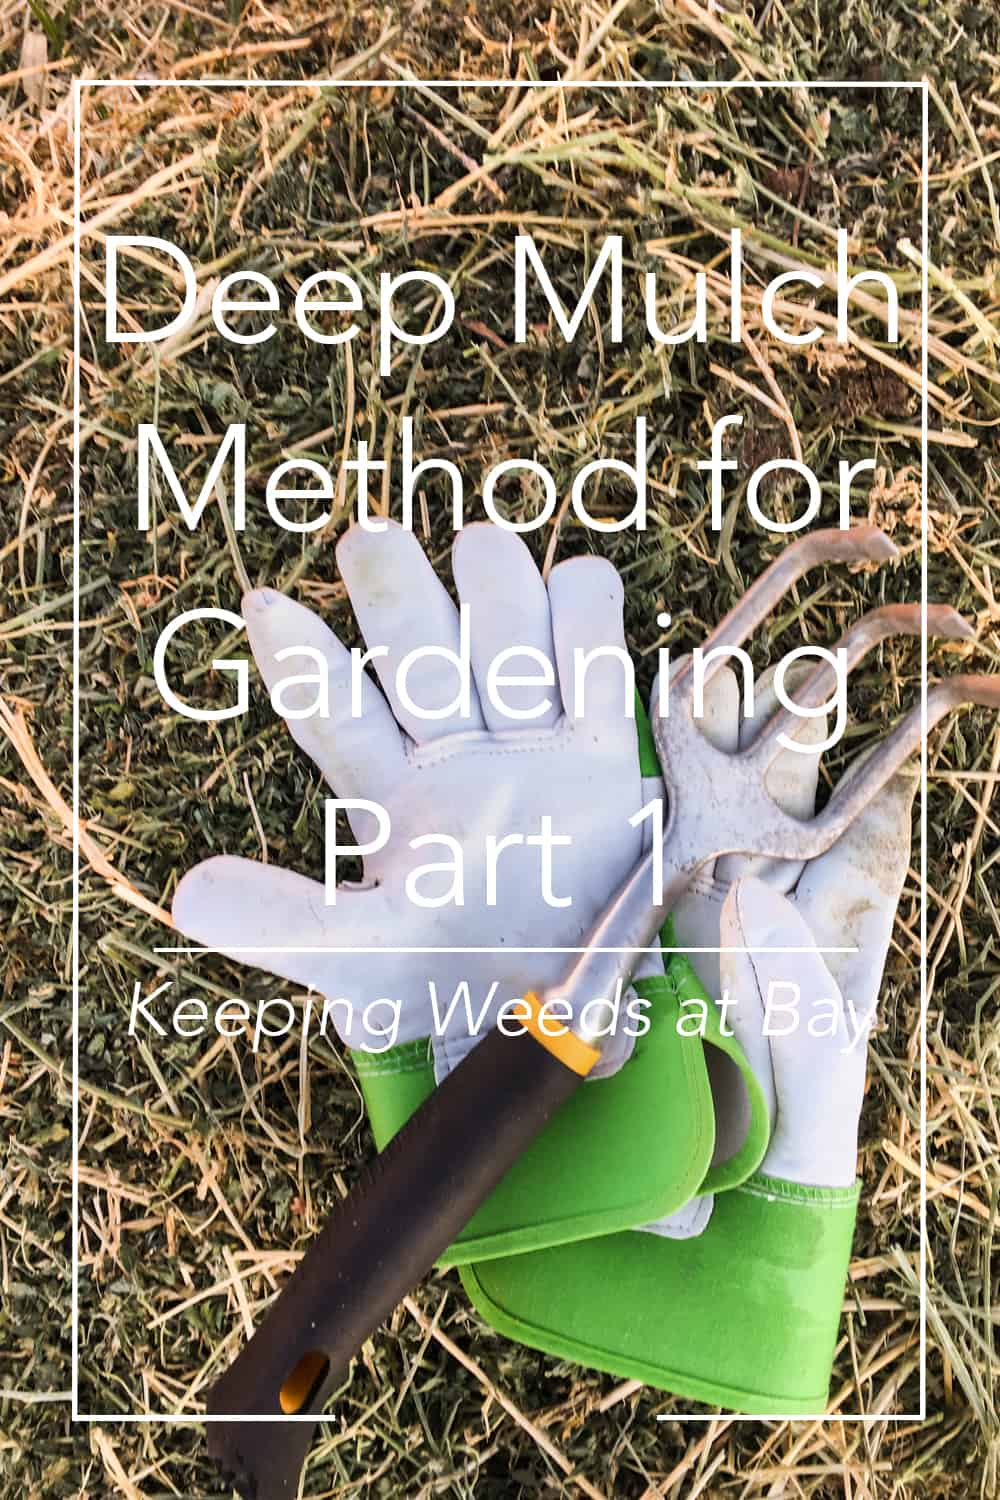 Have you tried the deep mulch method in your garden? Click here to see how using this method keeps the weeds at bay in my garden. #gardening #gardentips #homesteading #deepmulchmethod